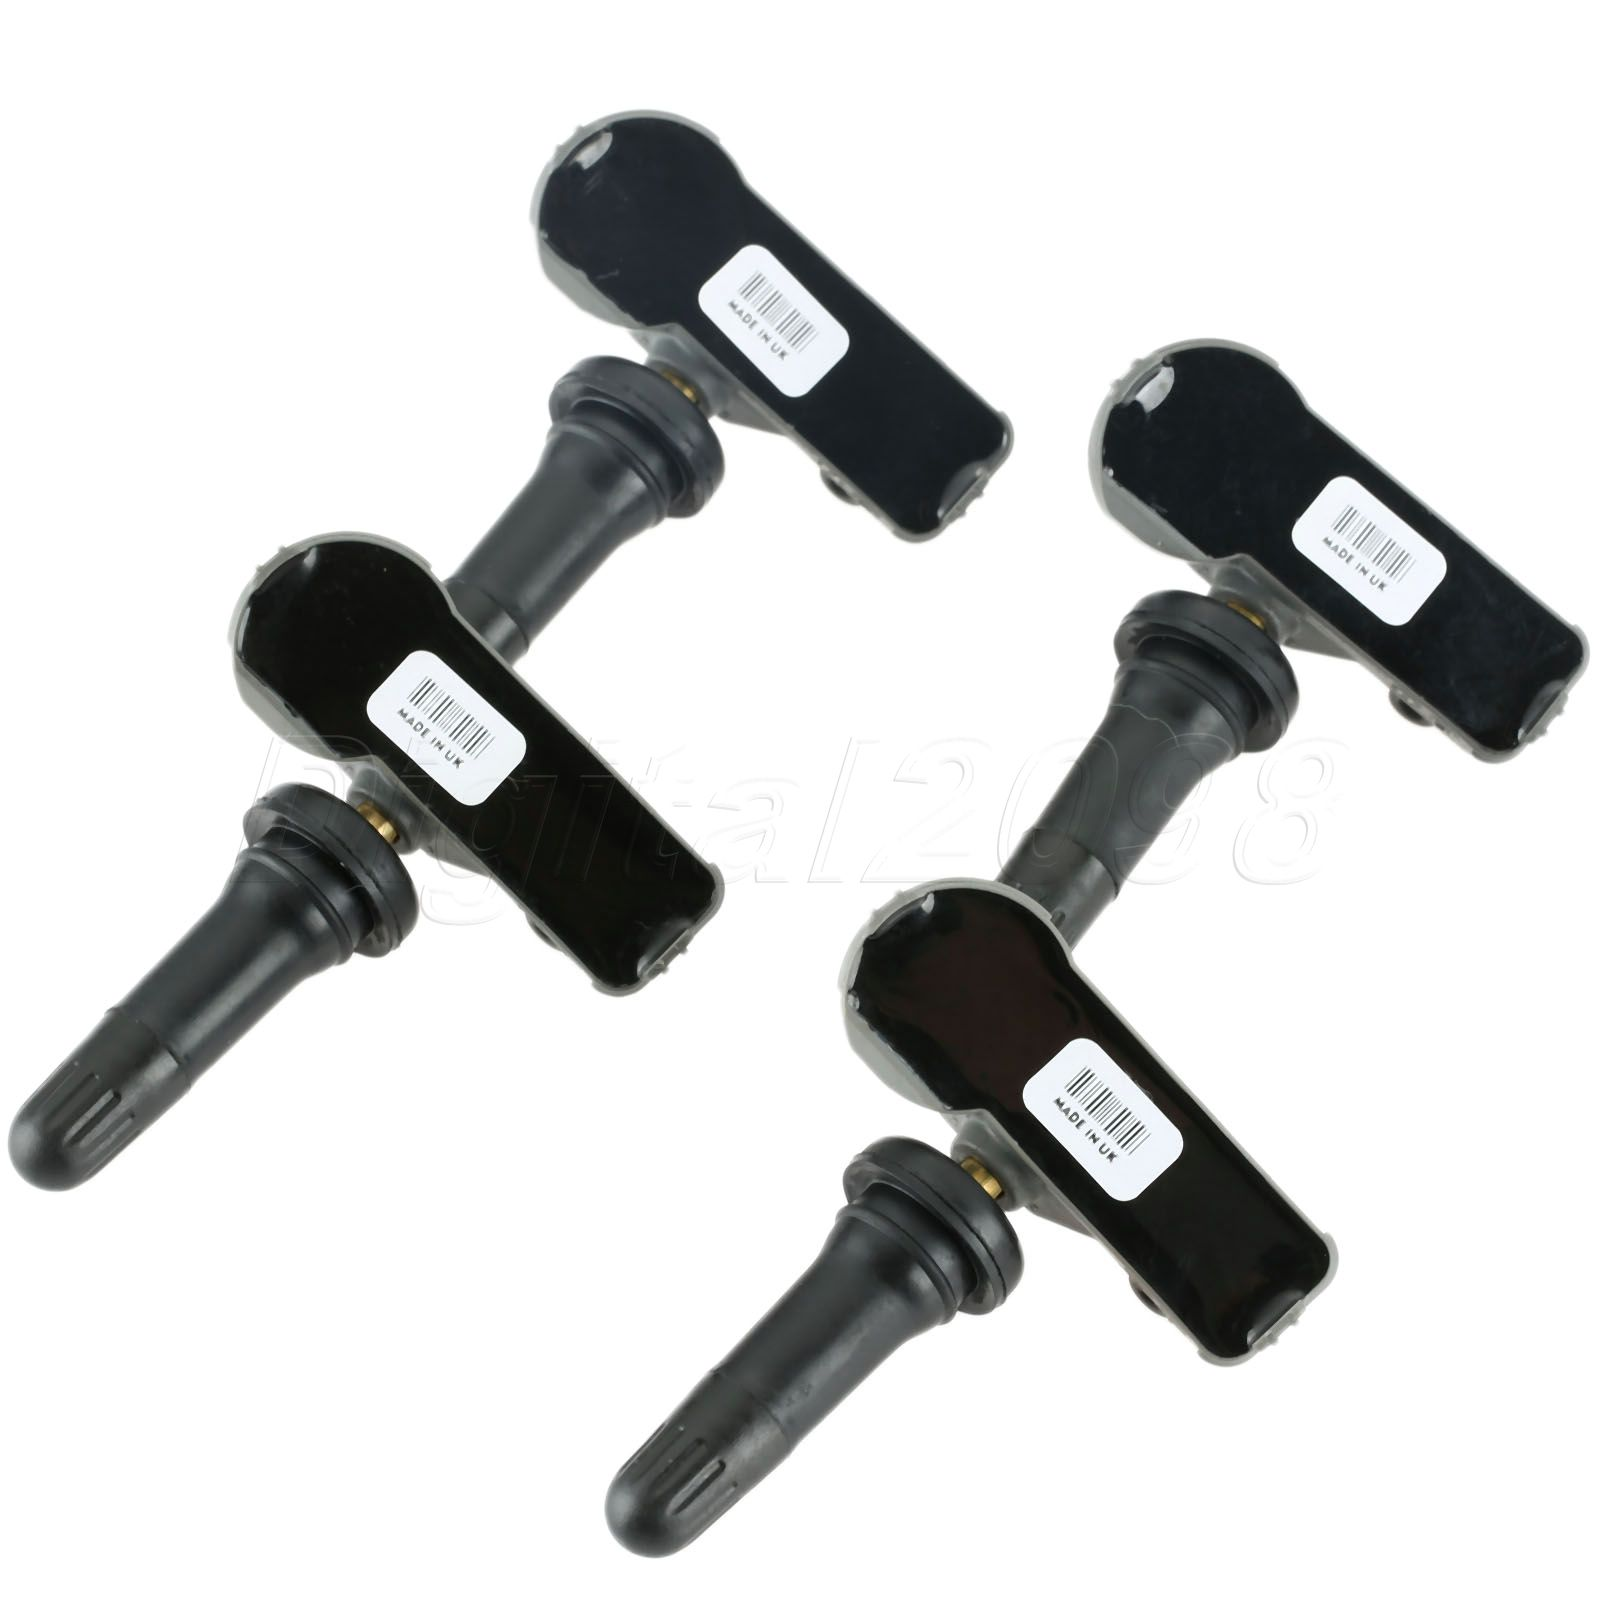 Yetaha 4pcs High Quality TPMS Tire Pressure Sensor OEM 13581558 315MHz For Chevrolet For GMC Cadillac For Buick Free Shipping